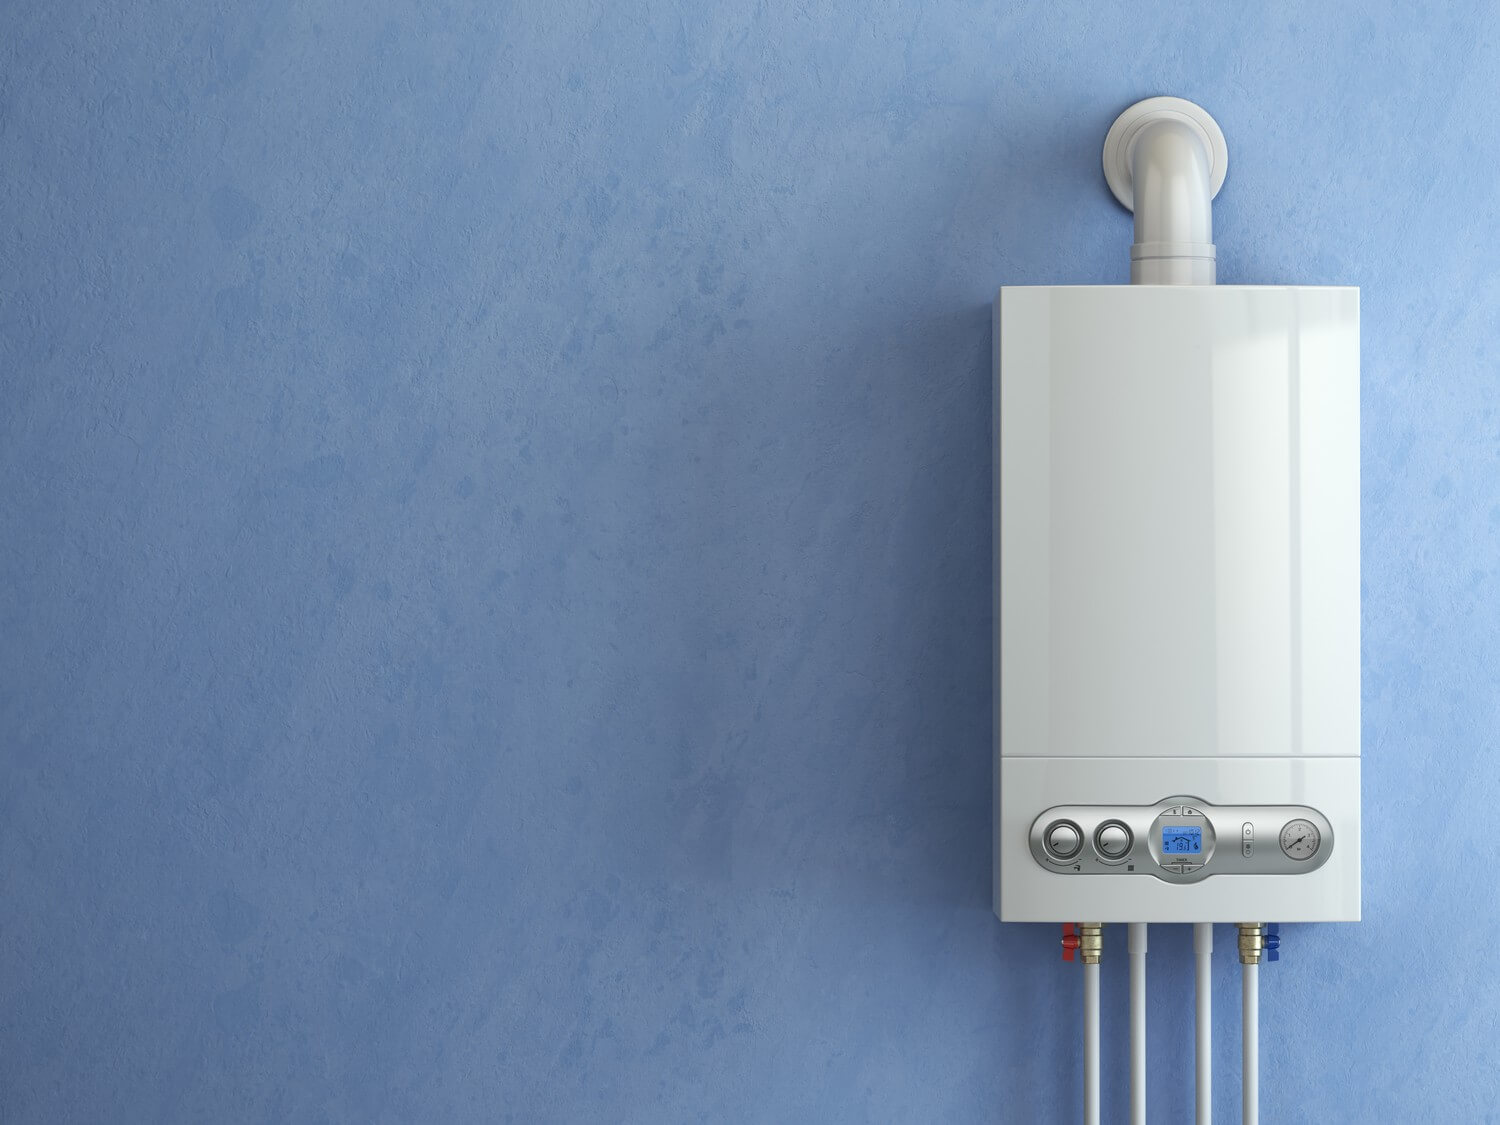 Boiler Finance Available. - from £14 per month